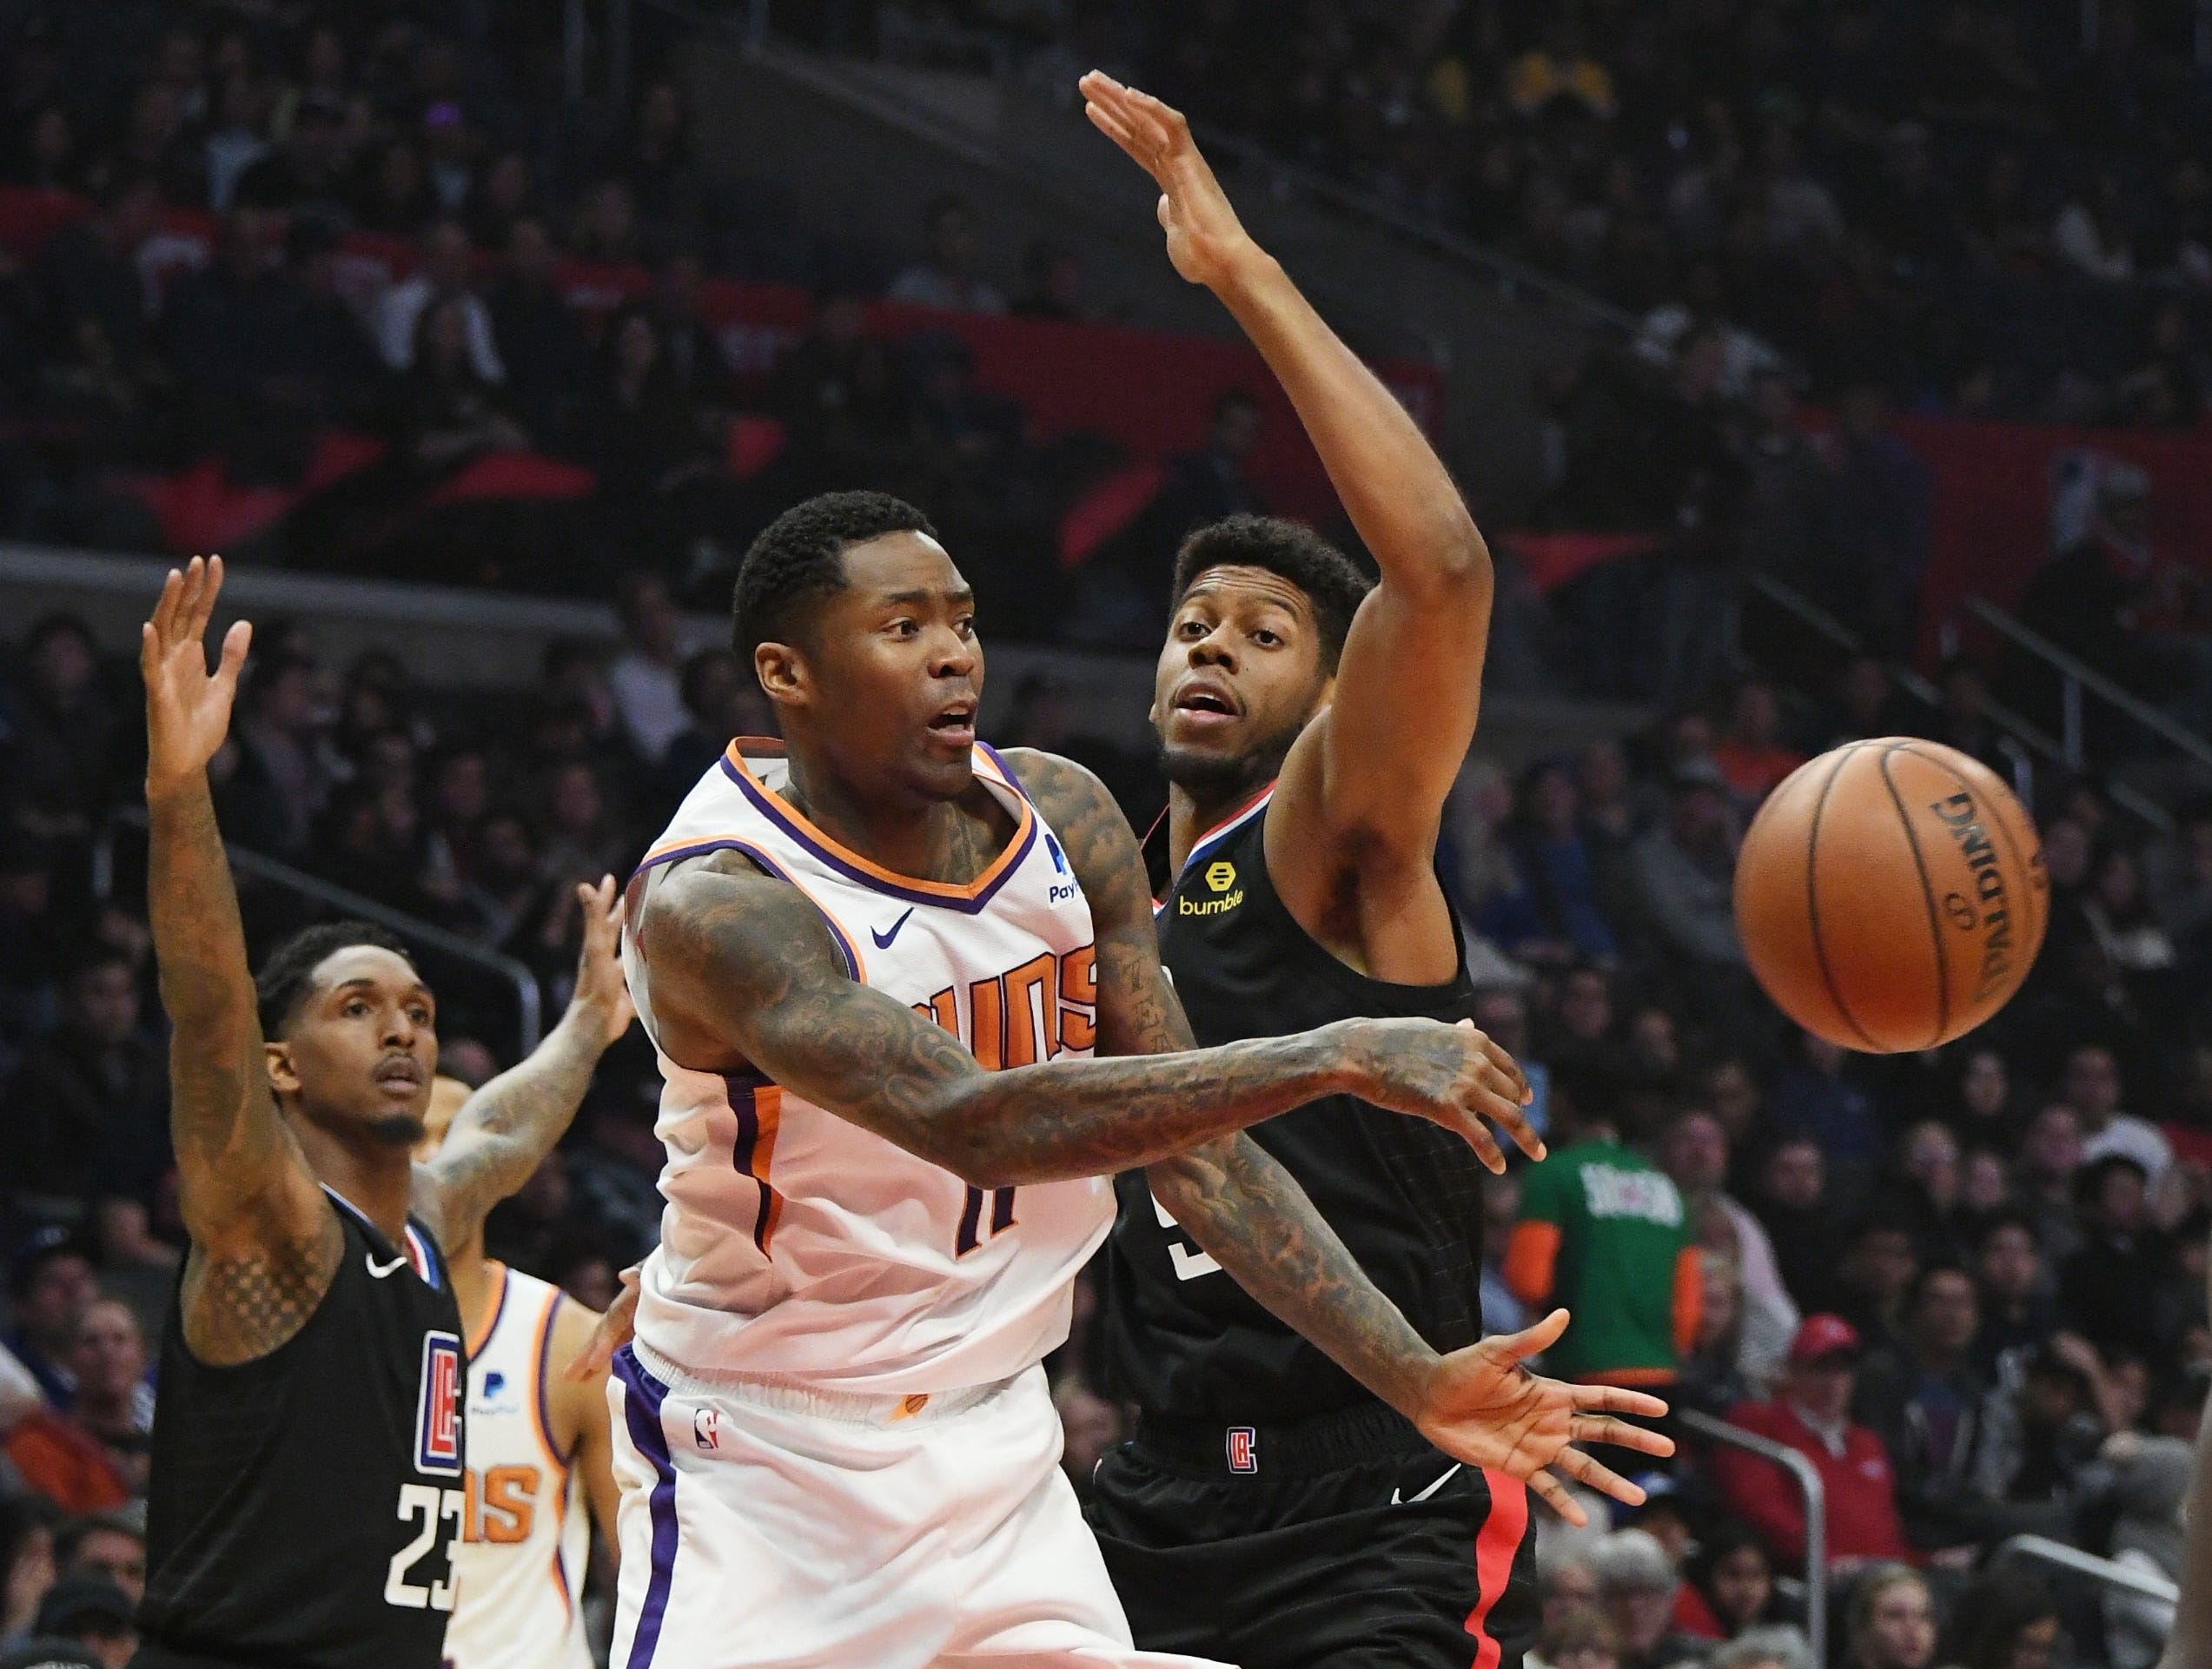 Feb 13, 2019; Los Angeles, CA, USA; Phoenix Suns guard Jamal Crawford (11) passes the ball against the LA Clippers in the first half at Staples Center. Mandatory Credit: Richard Mackson-USA TODAY Sports